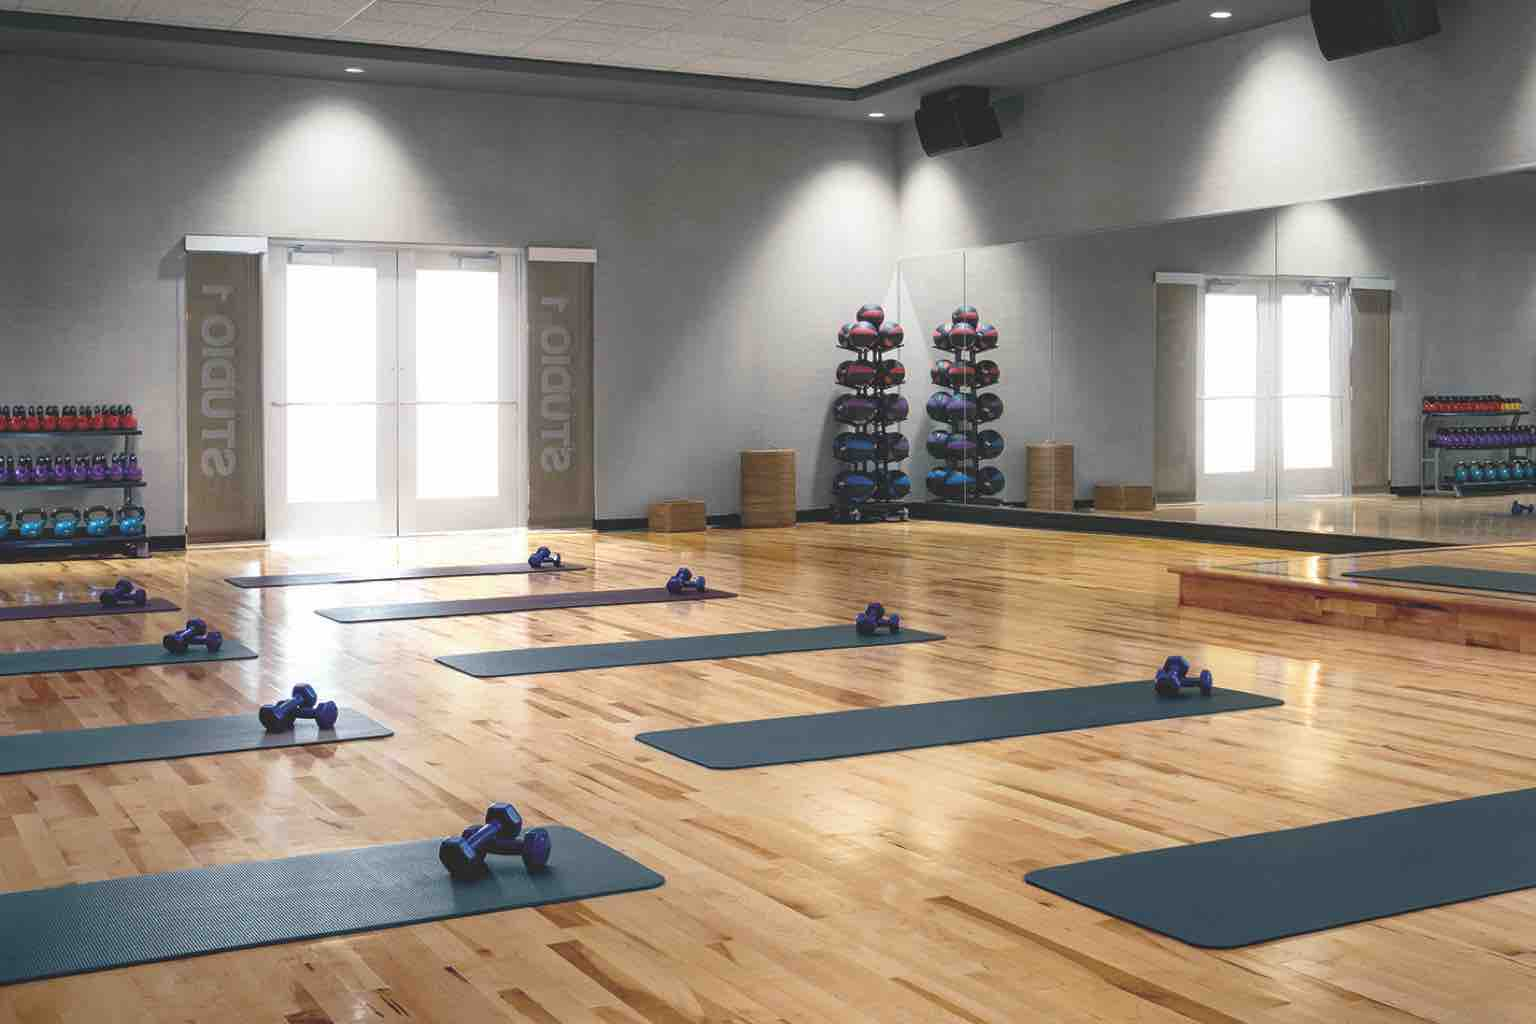 Blue yoga mats, each equipped with a set of hand weights, lined up on a studio's wood floor